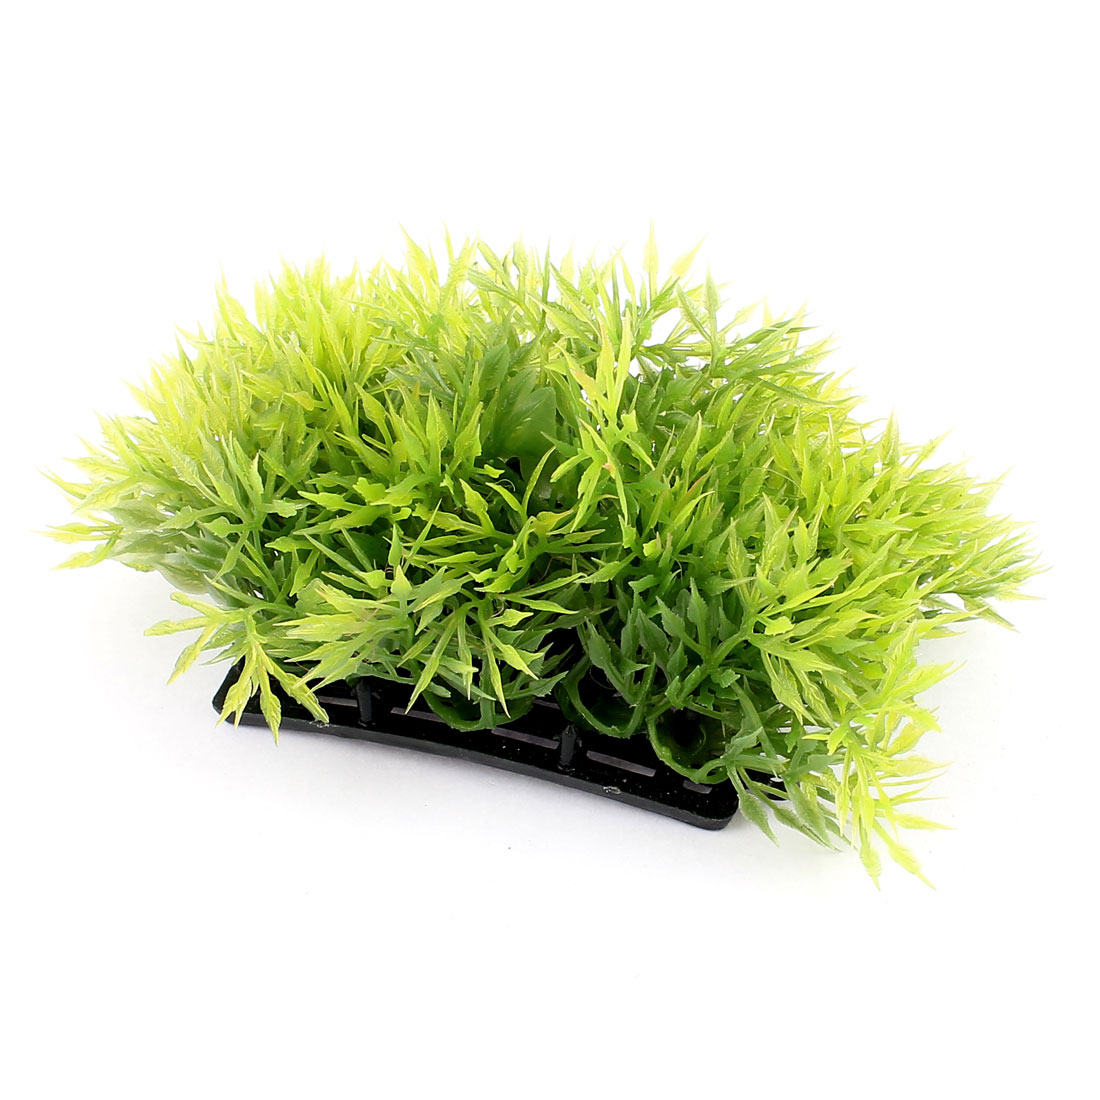 Plastic Artificial Green Grass Plant Aquarium Ornament Decor